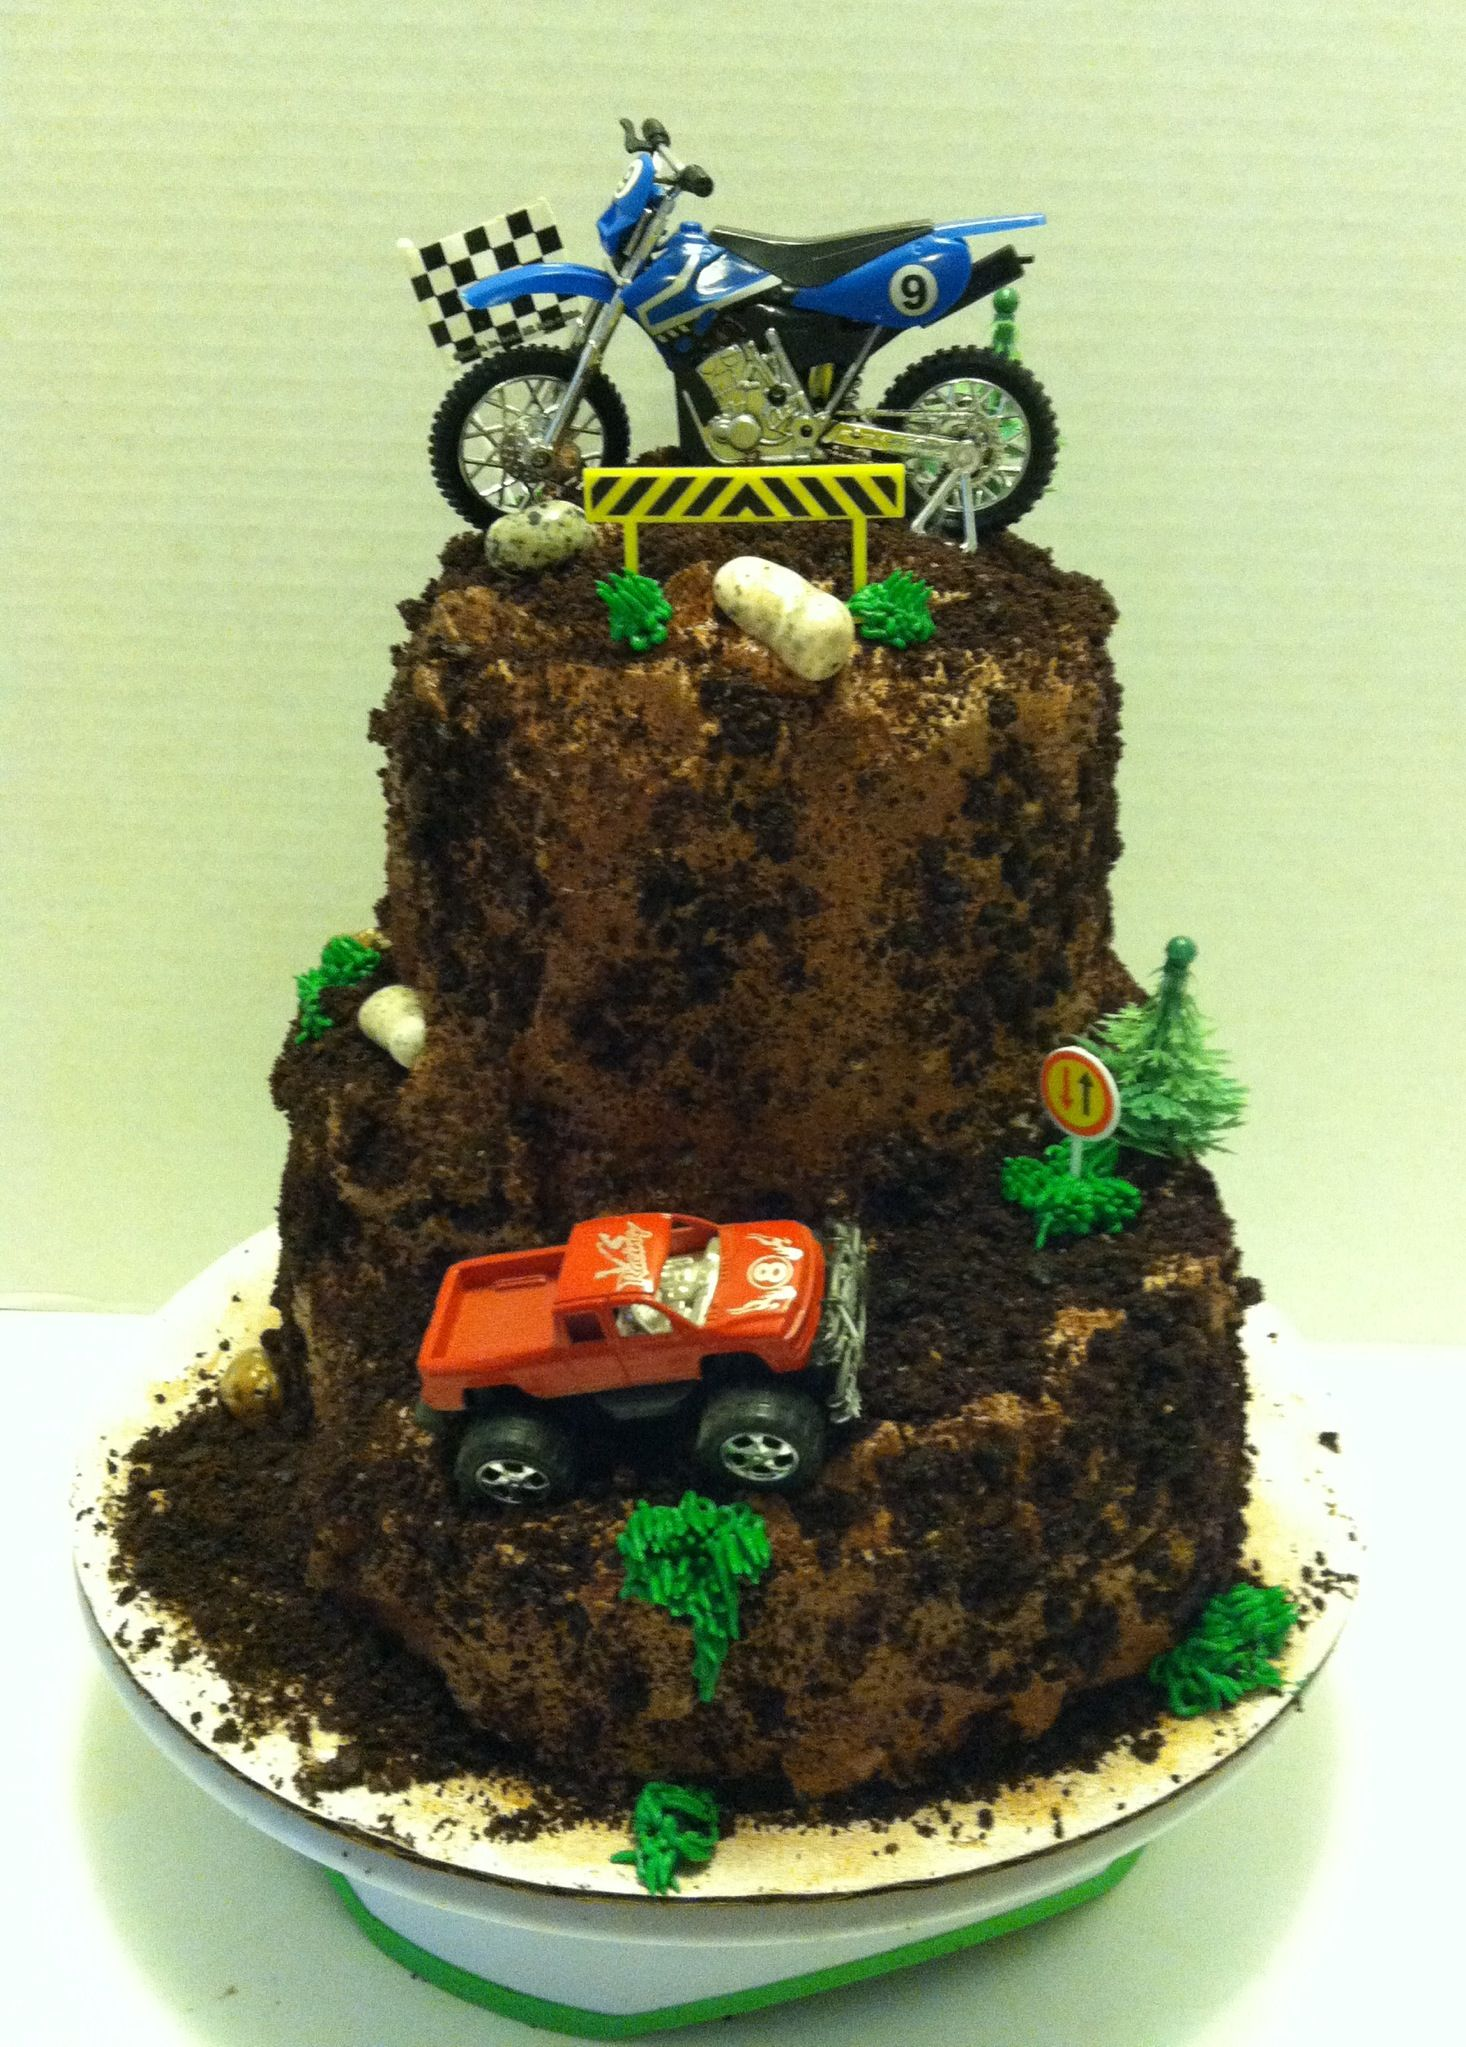 Fabulous Dirt Bike And Monster Truck Theme Cake Dirt Bike Cakes Bike Funny Birthday Cards Online Inifofree Goldxyz